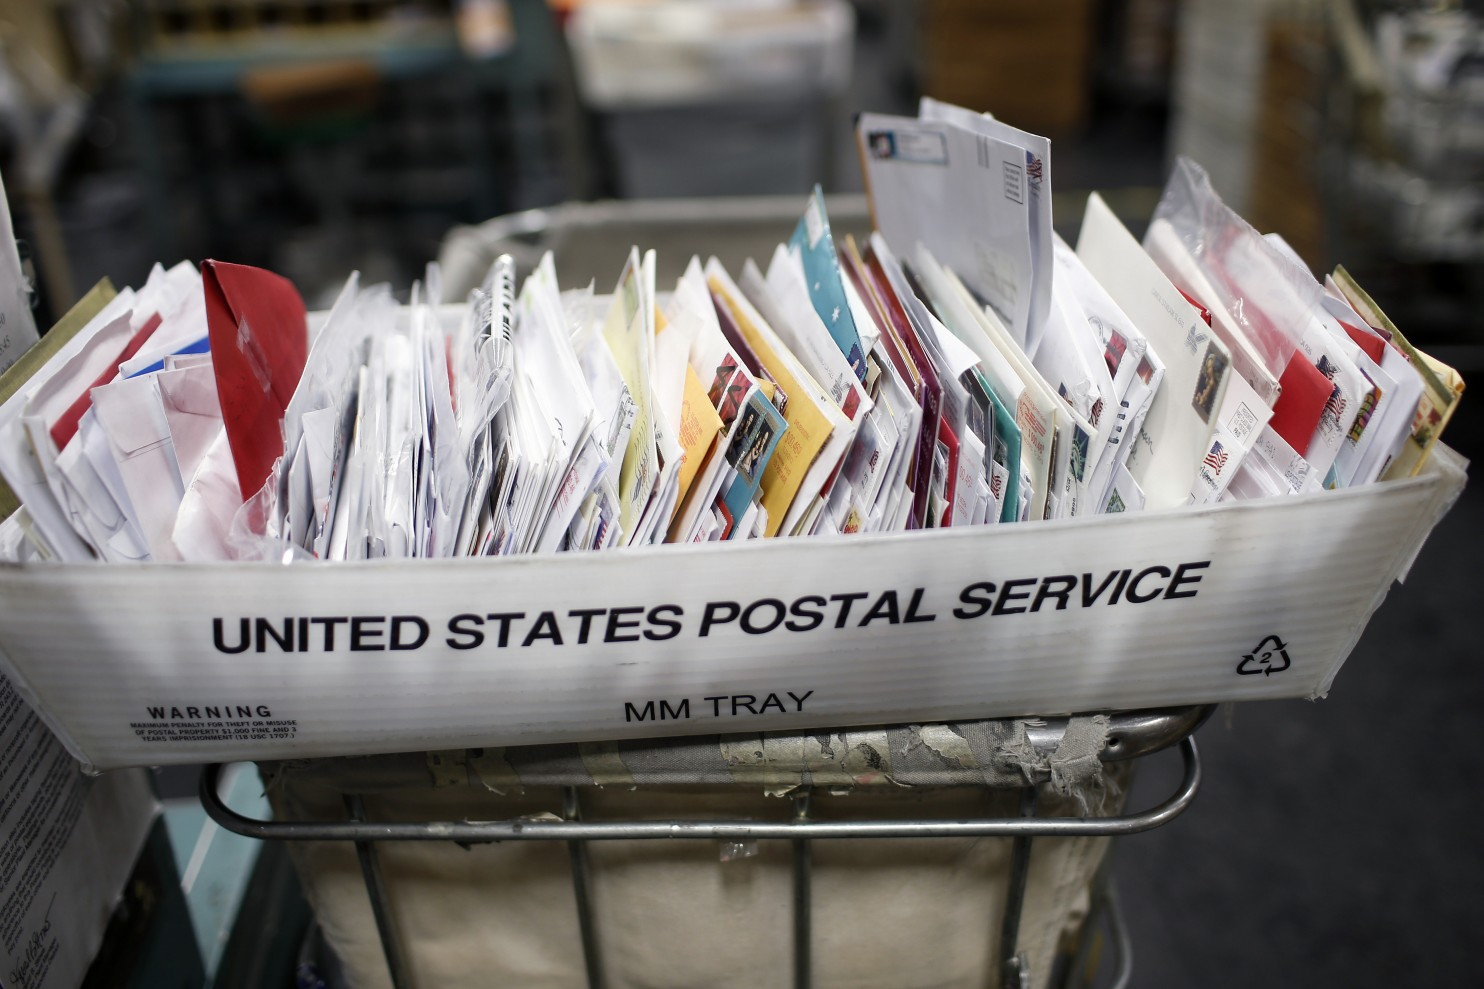 Postal worker pleads to pilfering mail at KC distribution center